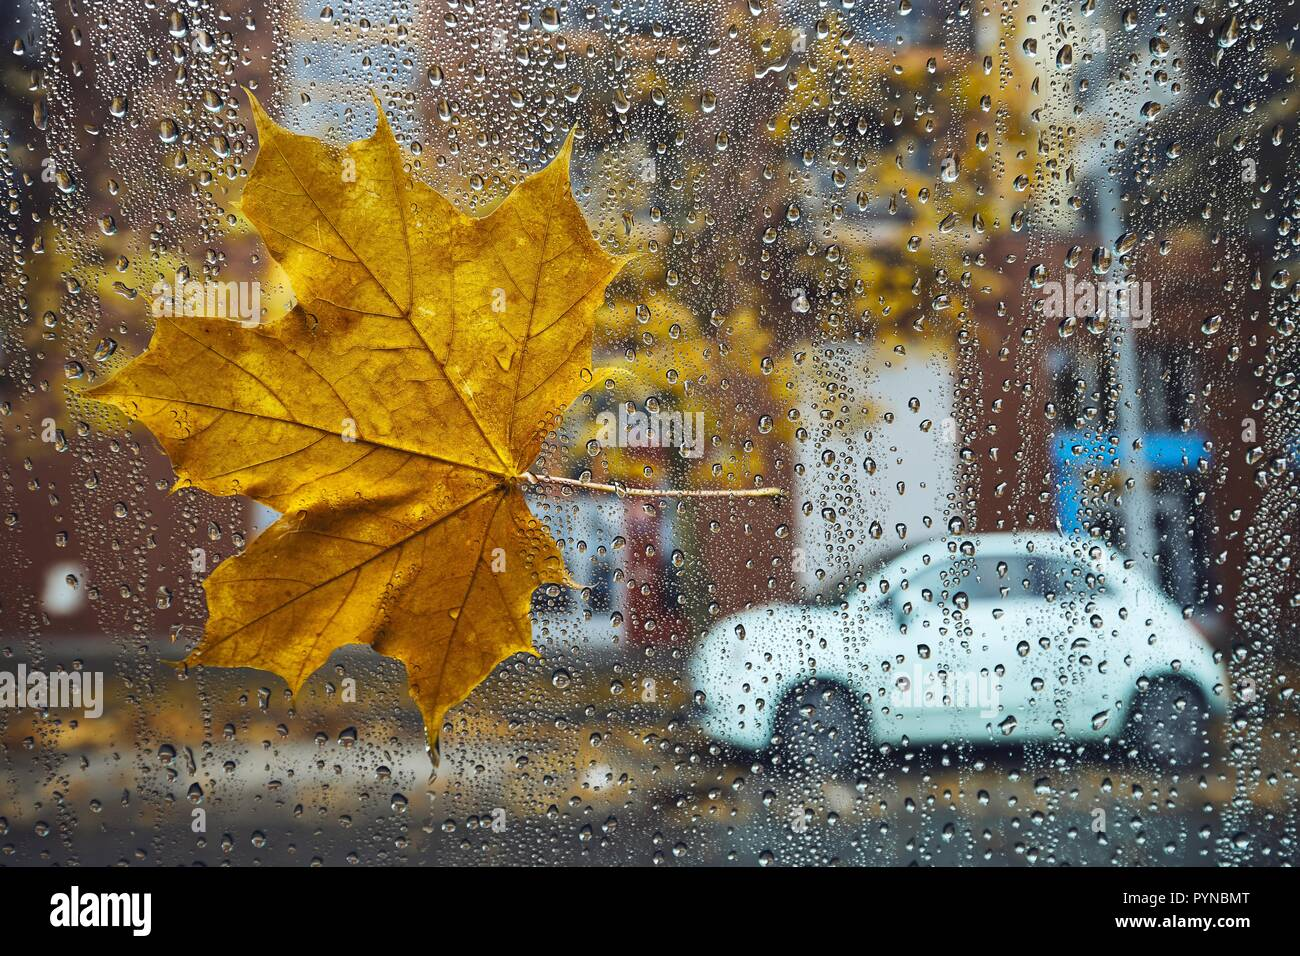 Autumn in the city. Fallen maple leaf and raindrops on a window of car against street. - Stock Image